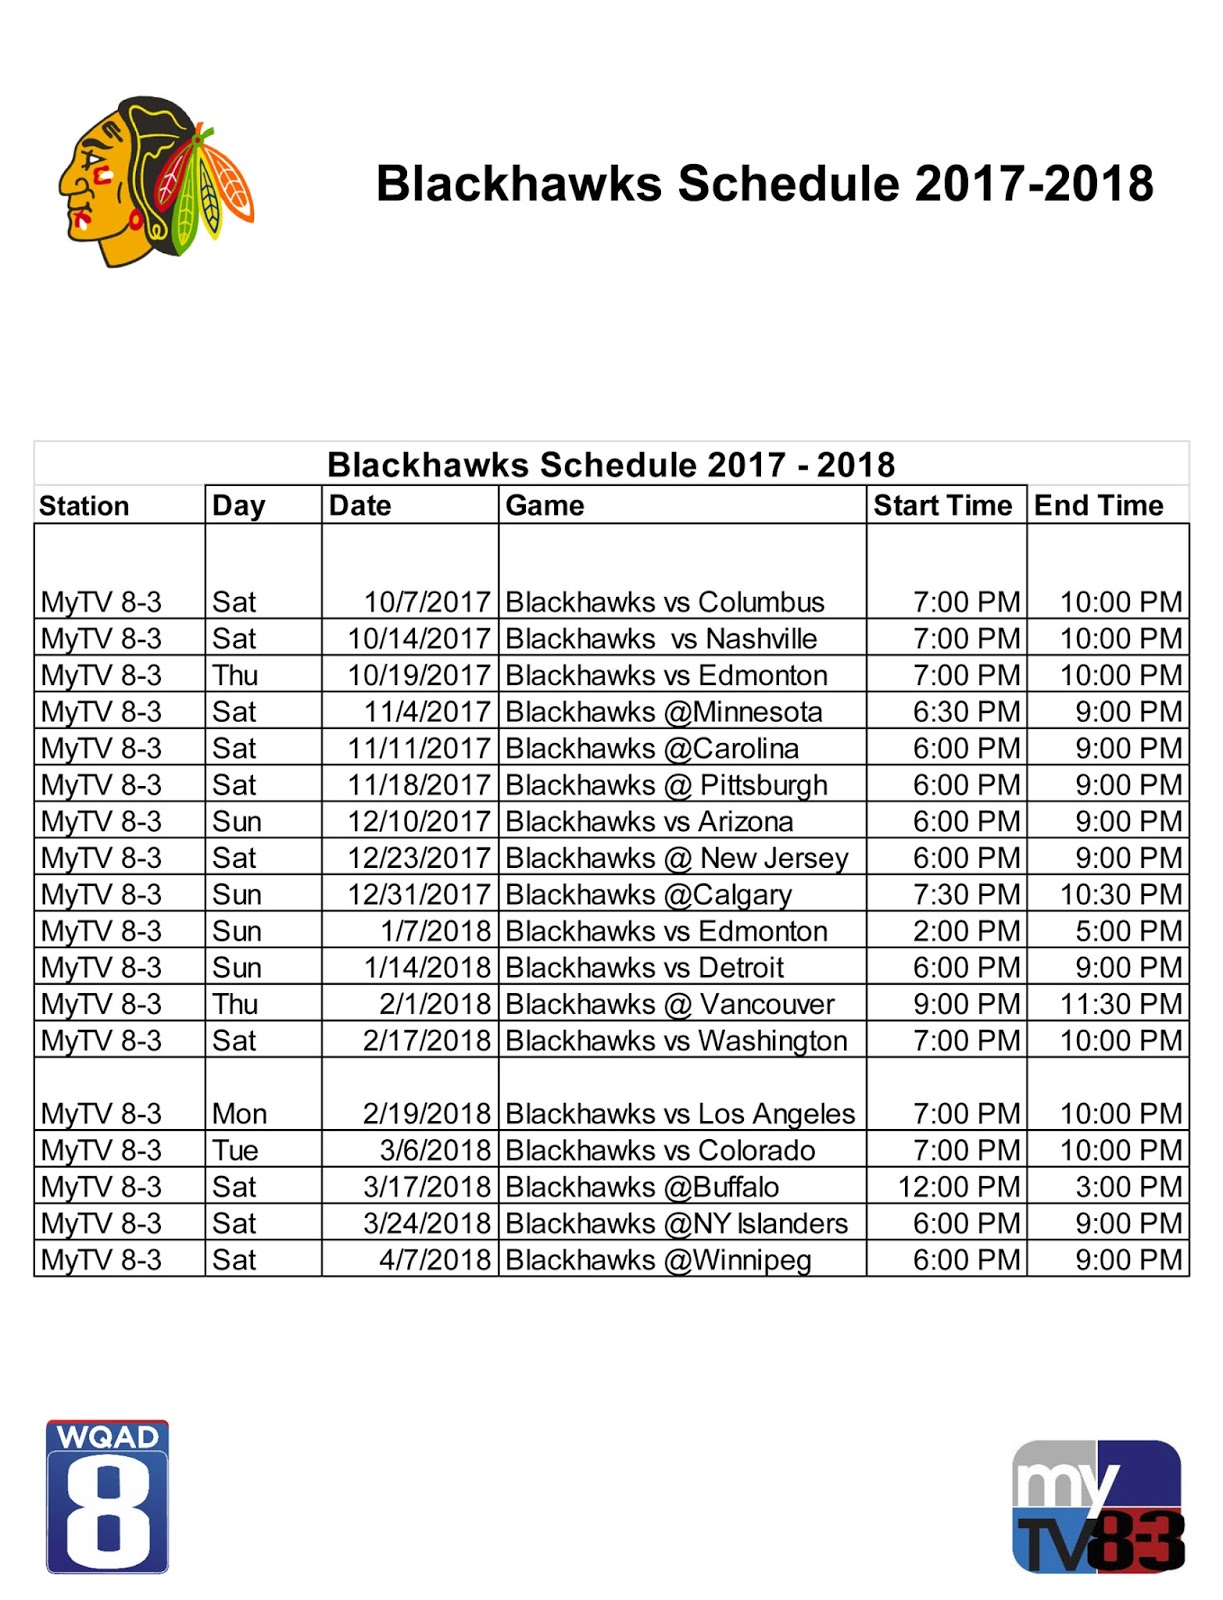 Tipton conservative sports chicago bulls and blackhawks schedules jpg  1223x1600 Schedule chicago bulls 2017 2018 f022abf5e